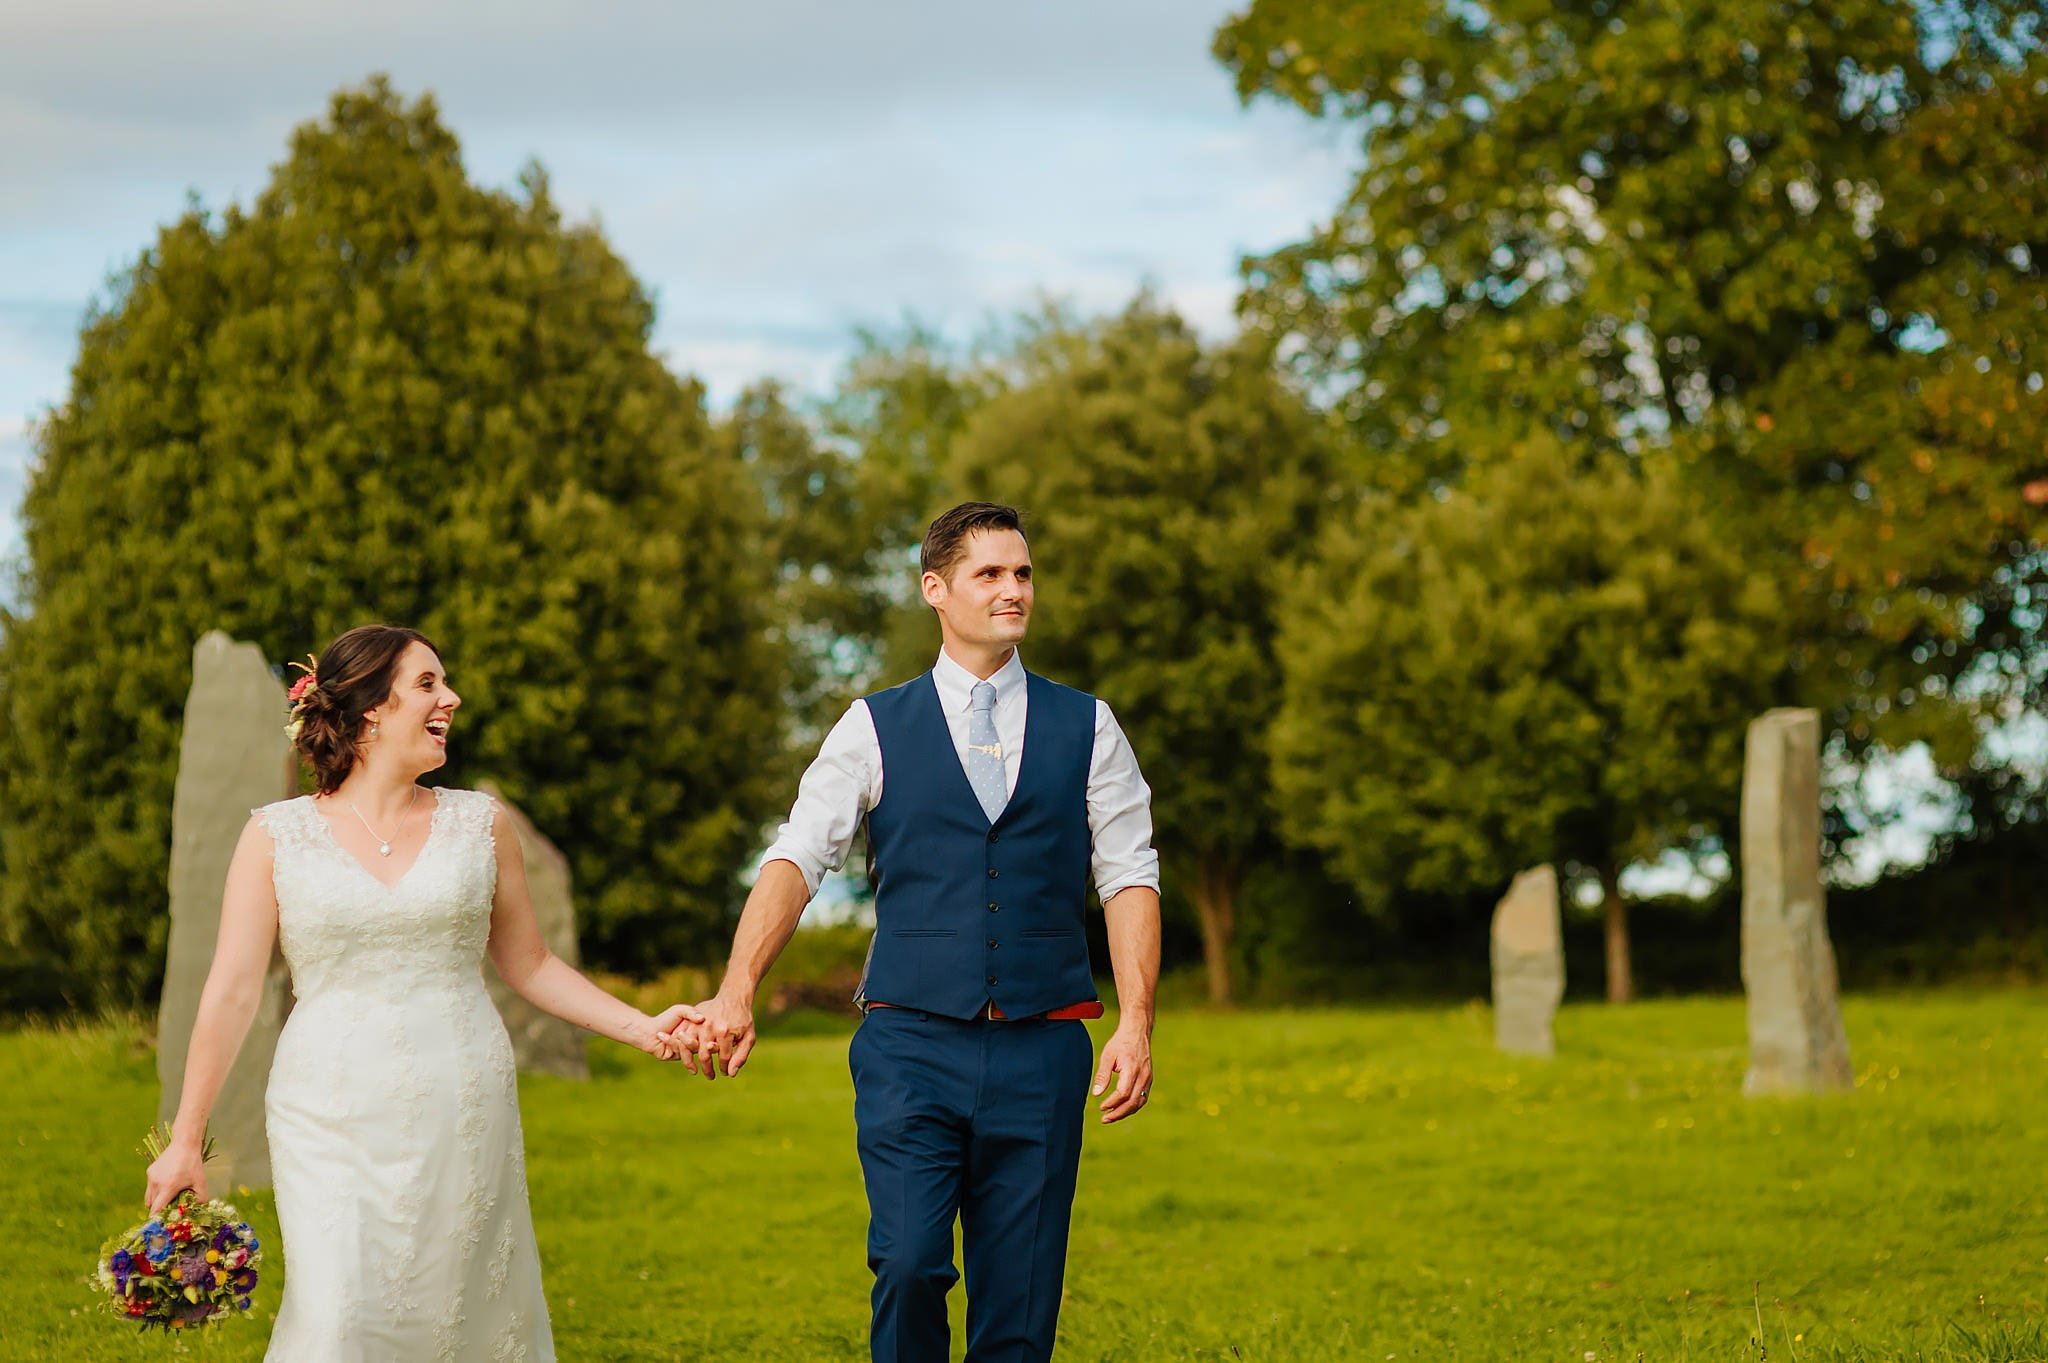 Wedding photography at Hellens Manor in Herefordshire, West Midlands | Shelley + Ian 103